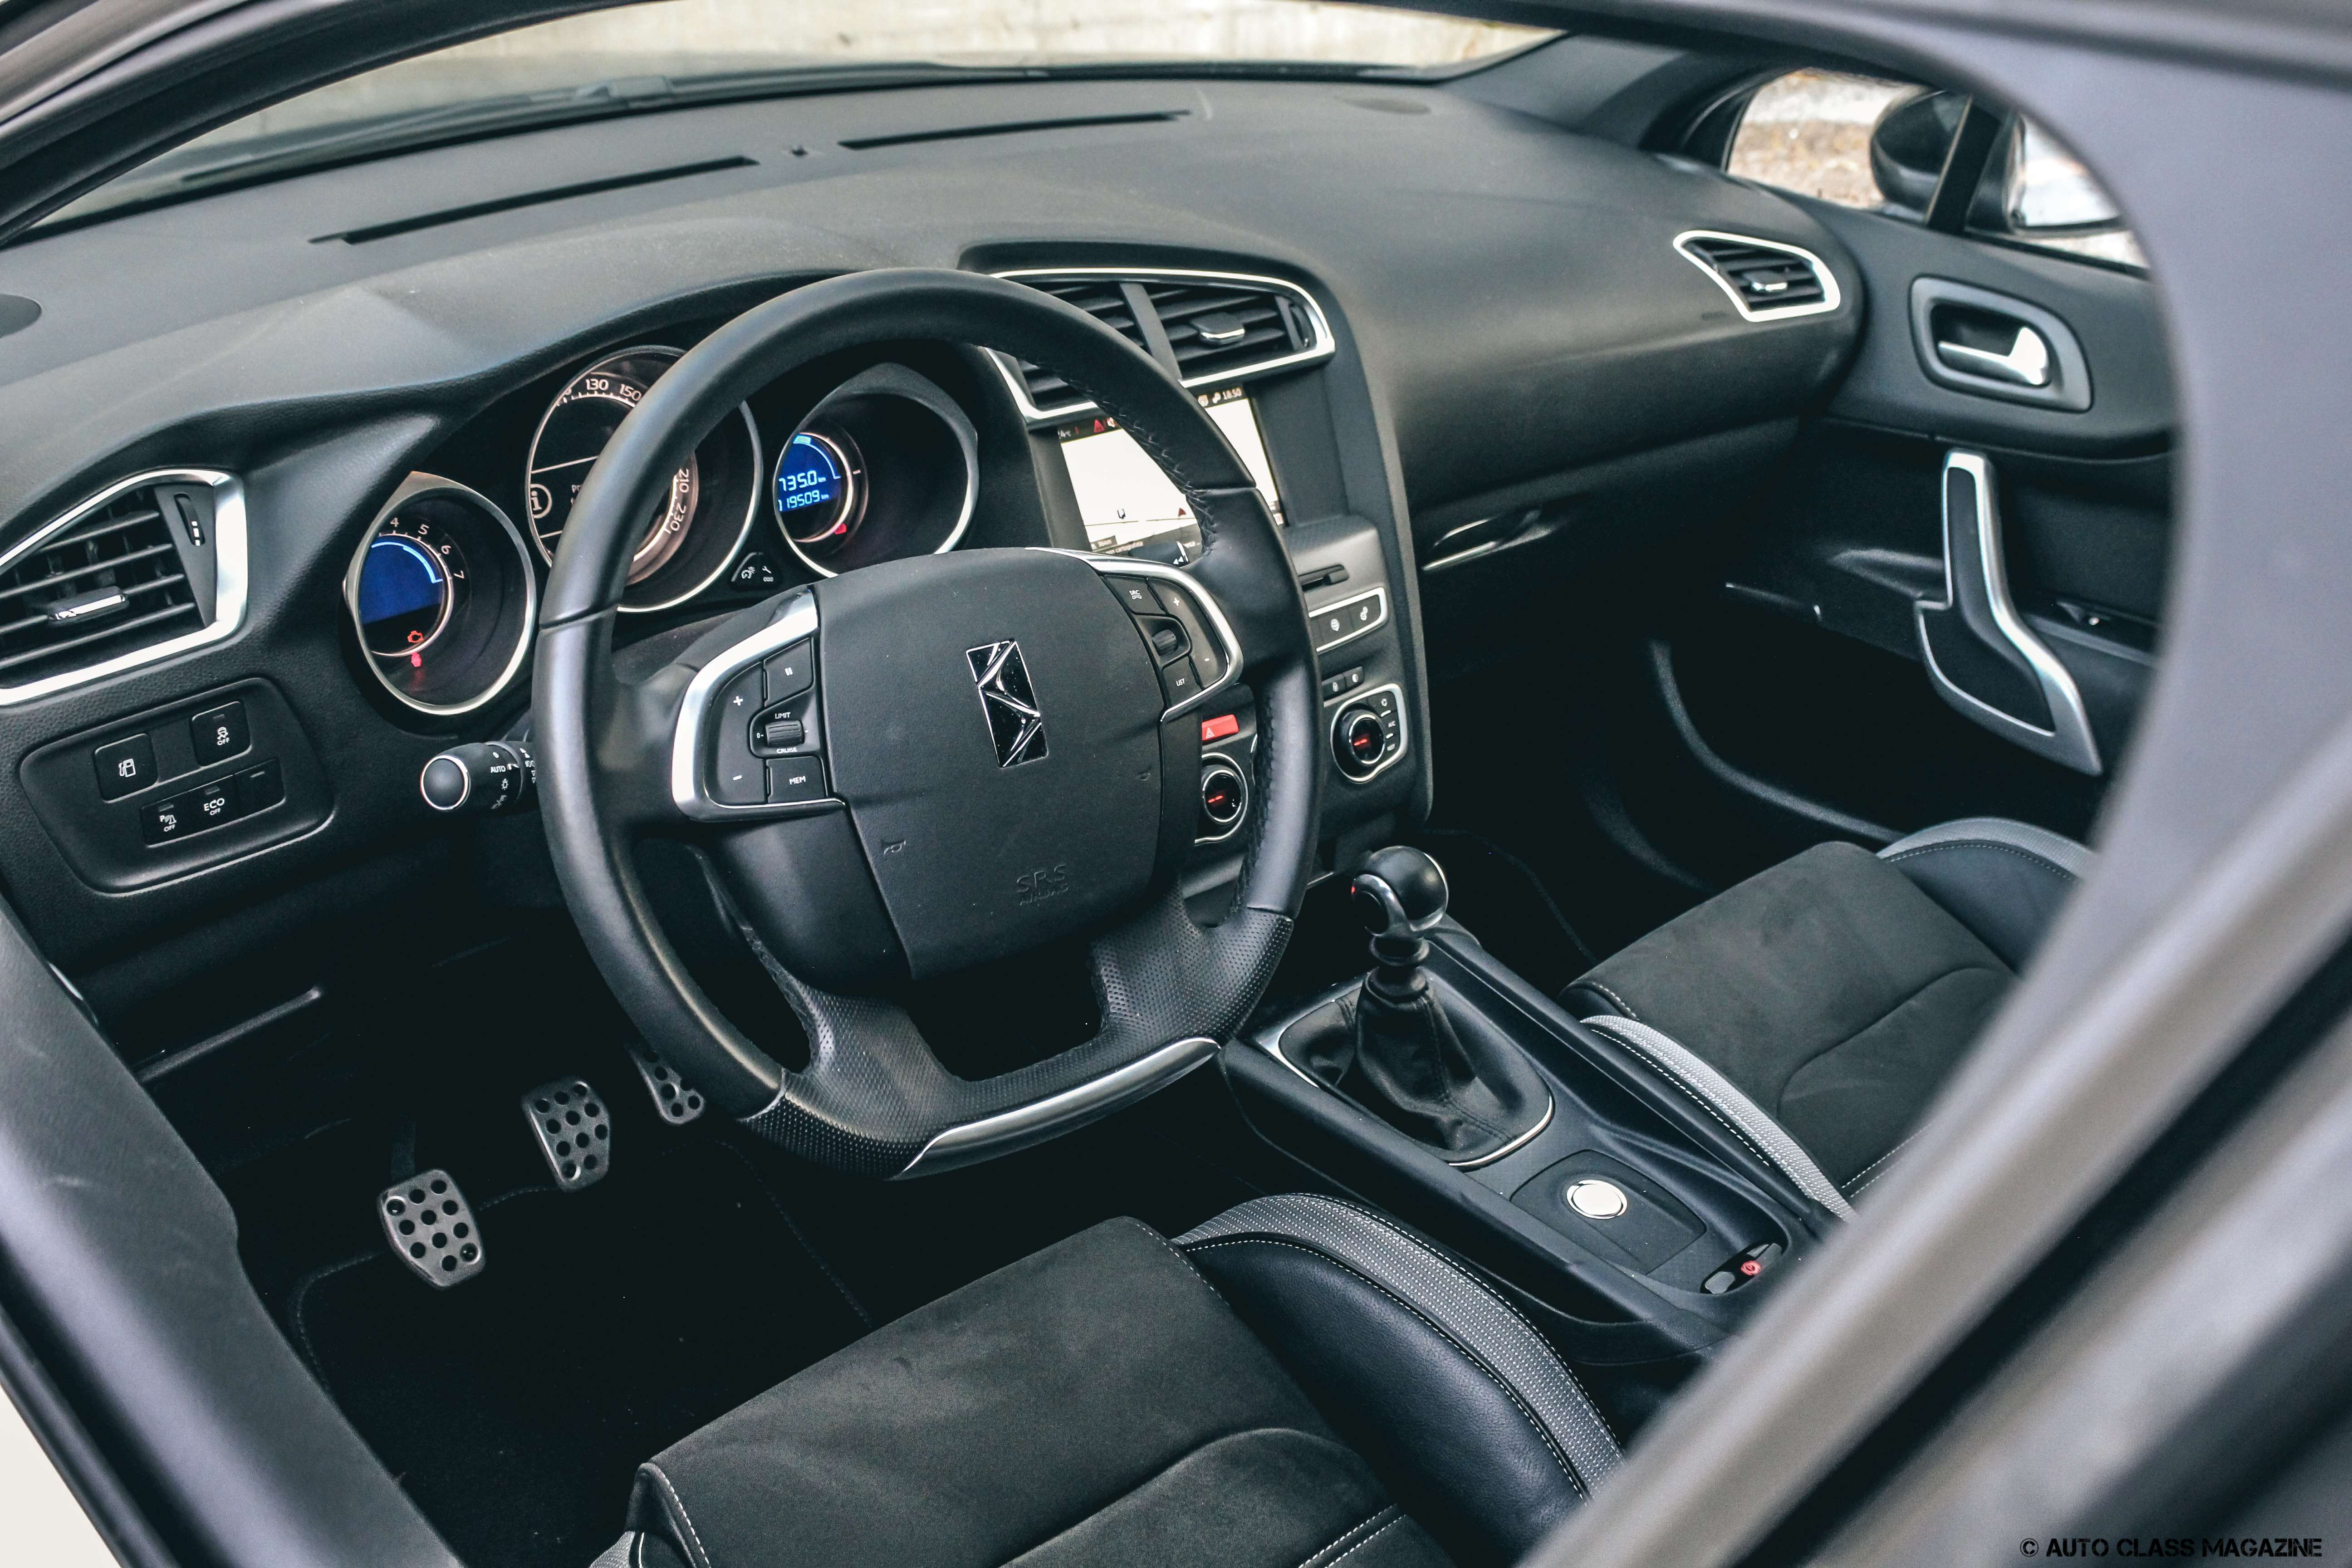 Our Test With The DS4 Crossback | Auto Class Magazine